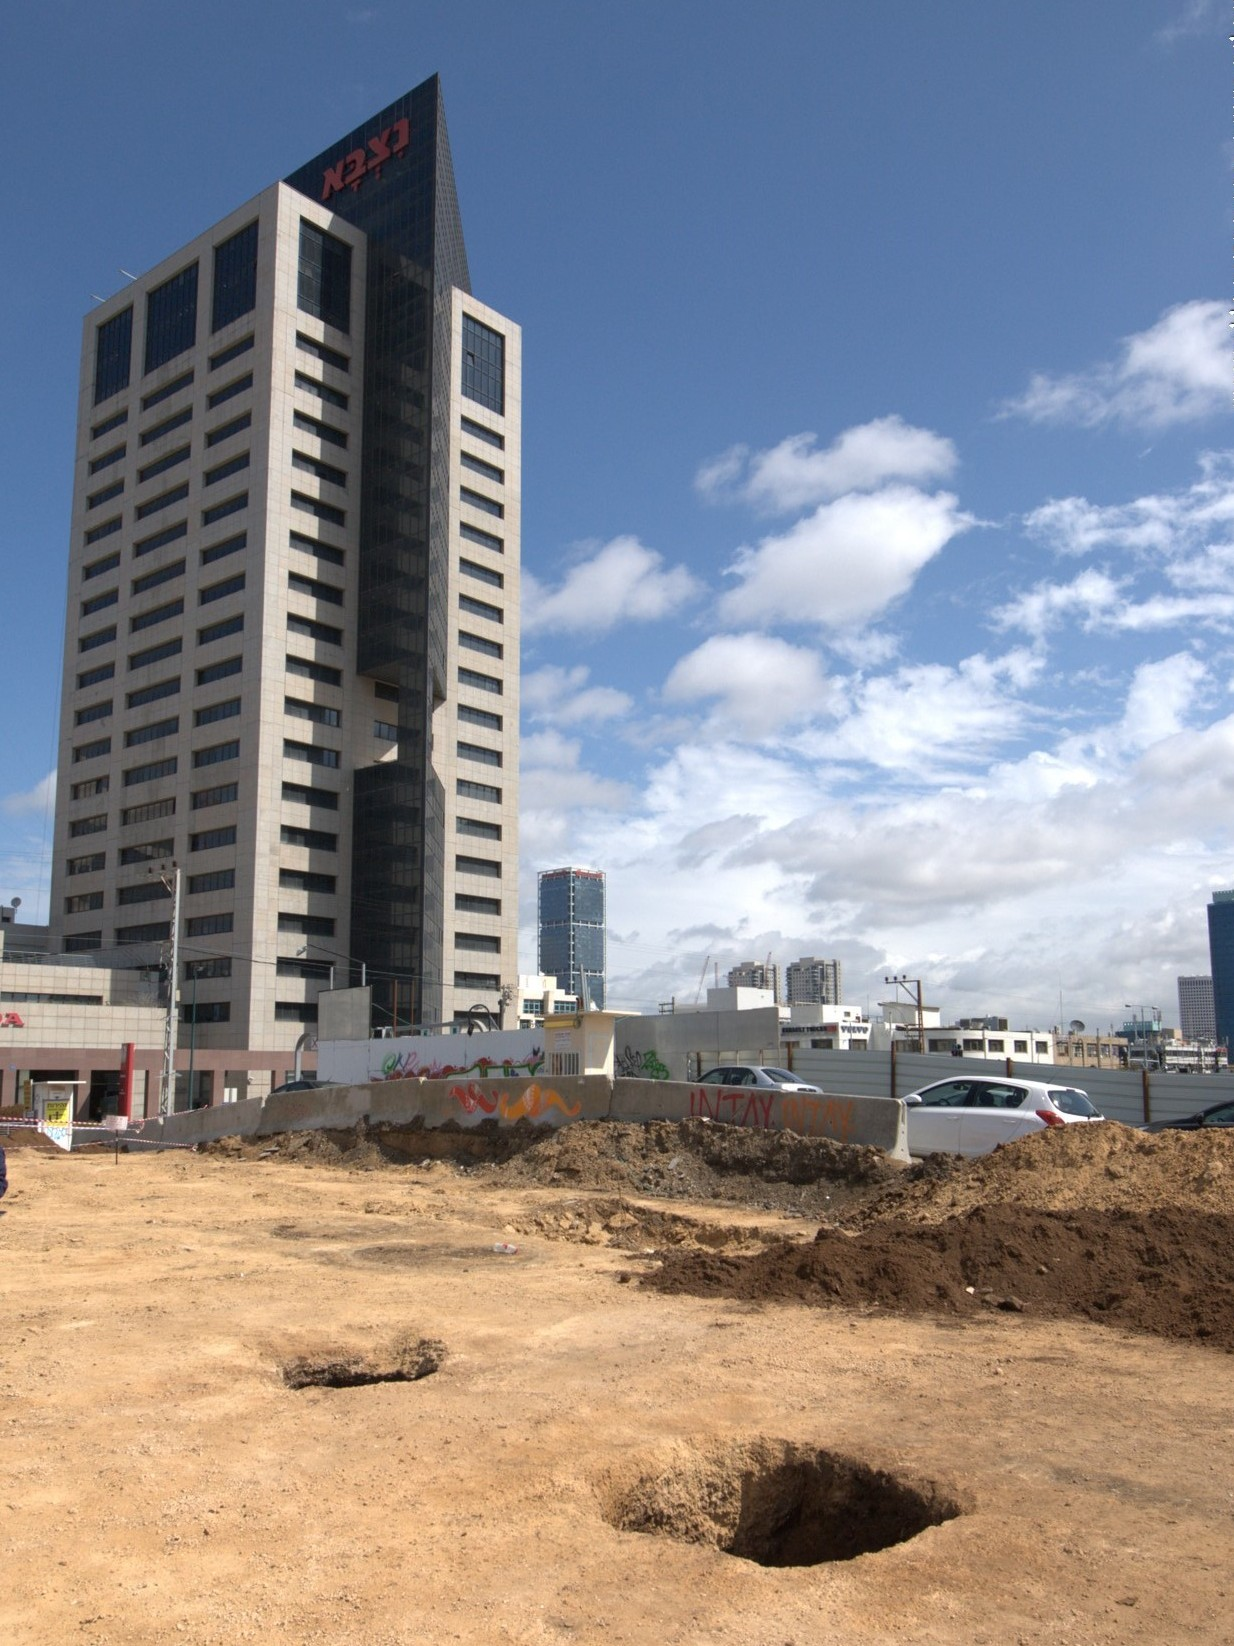 tel aviv city of beer, archeology dig from Egypt